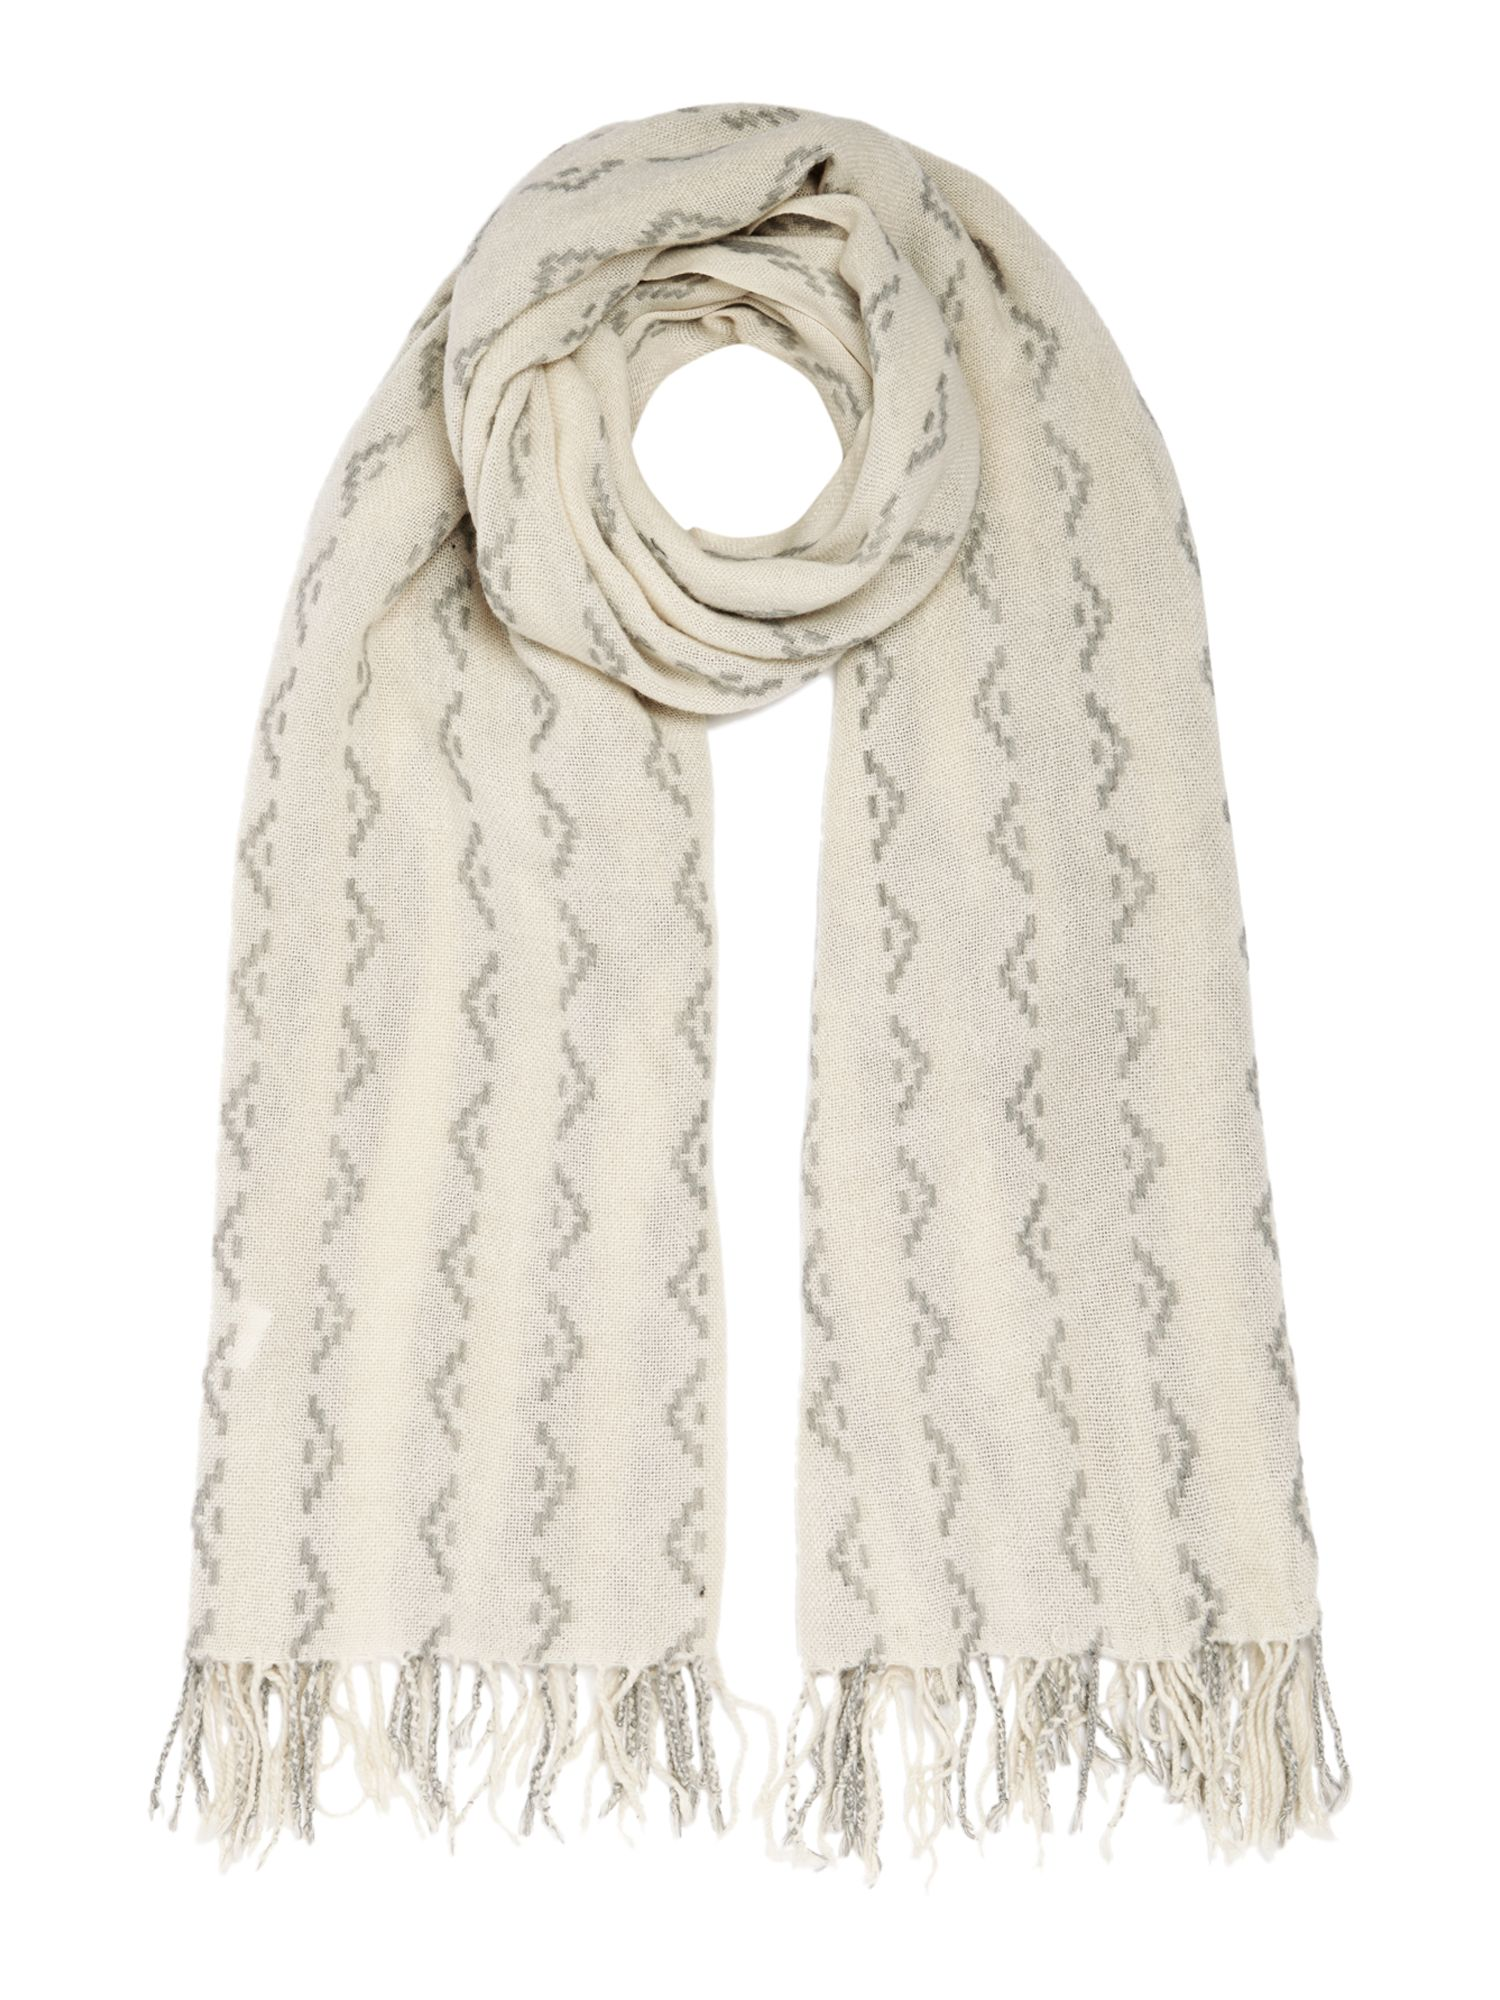 Gray & Willow Gray & Willow Mark Making Jacquard Scarf, Cream